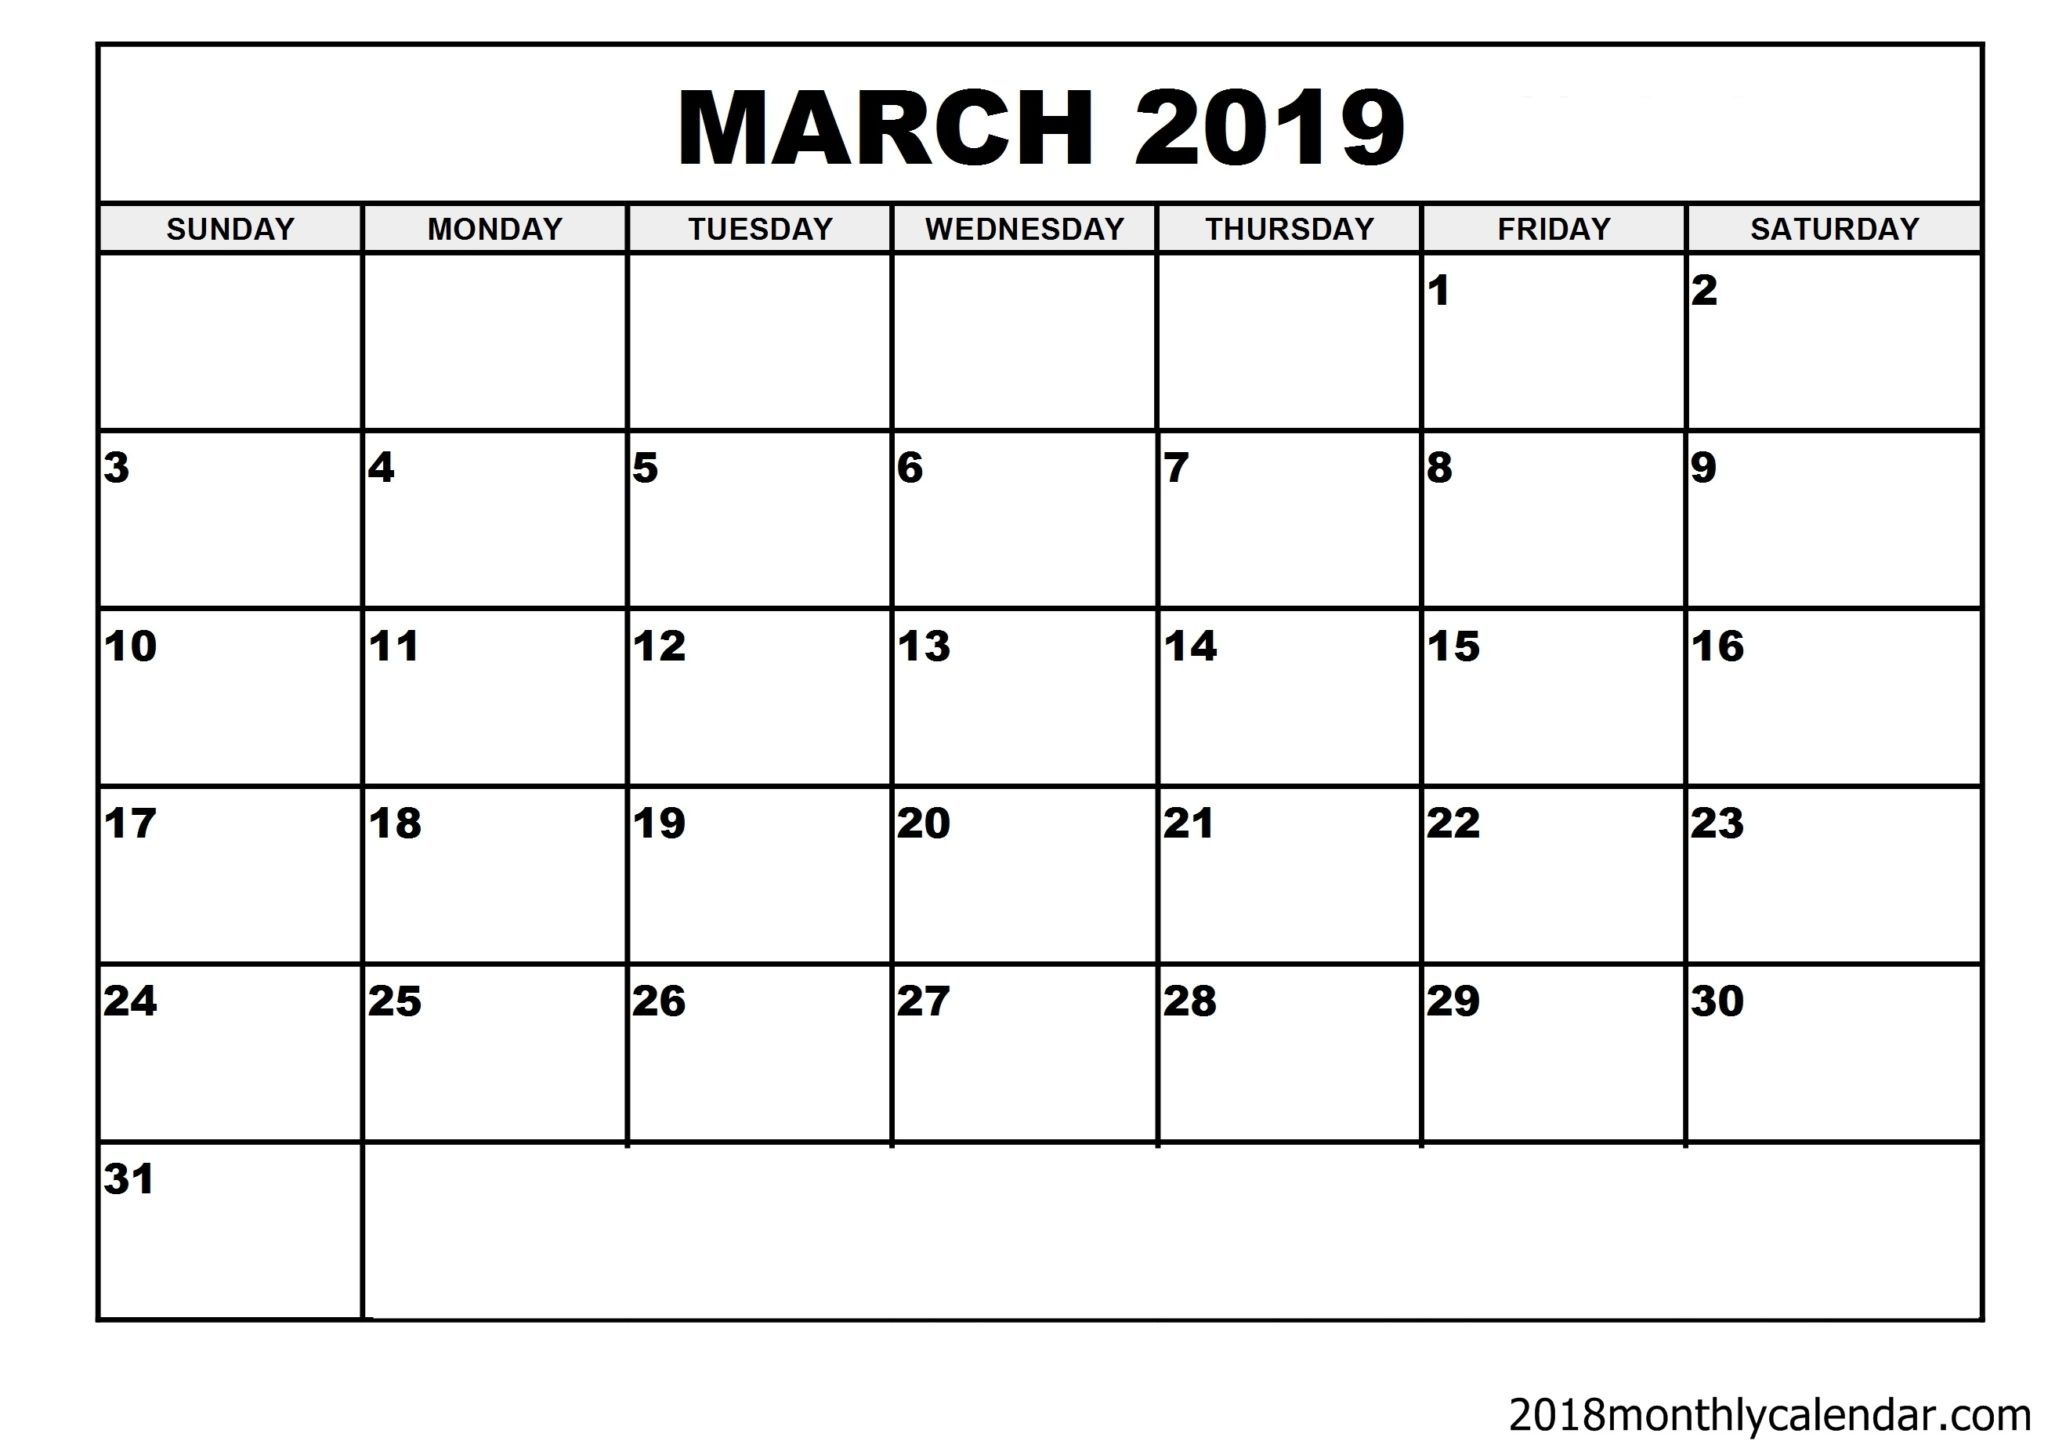 March Calendar Template 2019 Download March 2019 Calendar – Blank Template   Editable Calendar